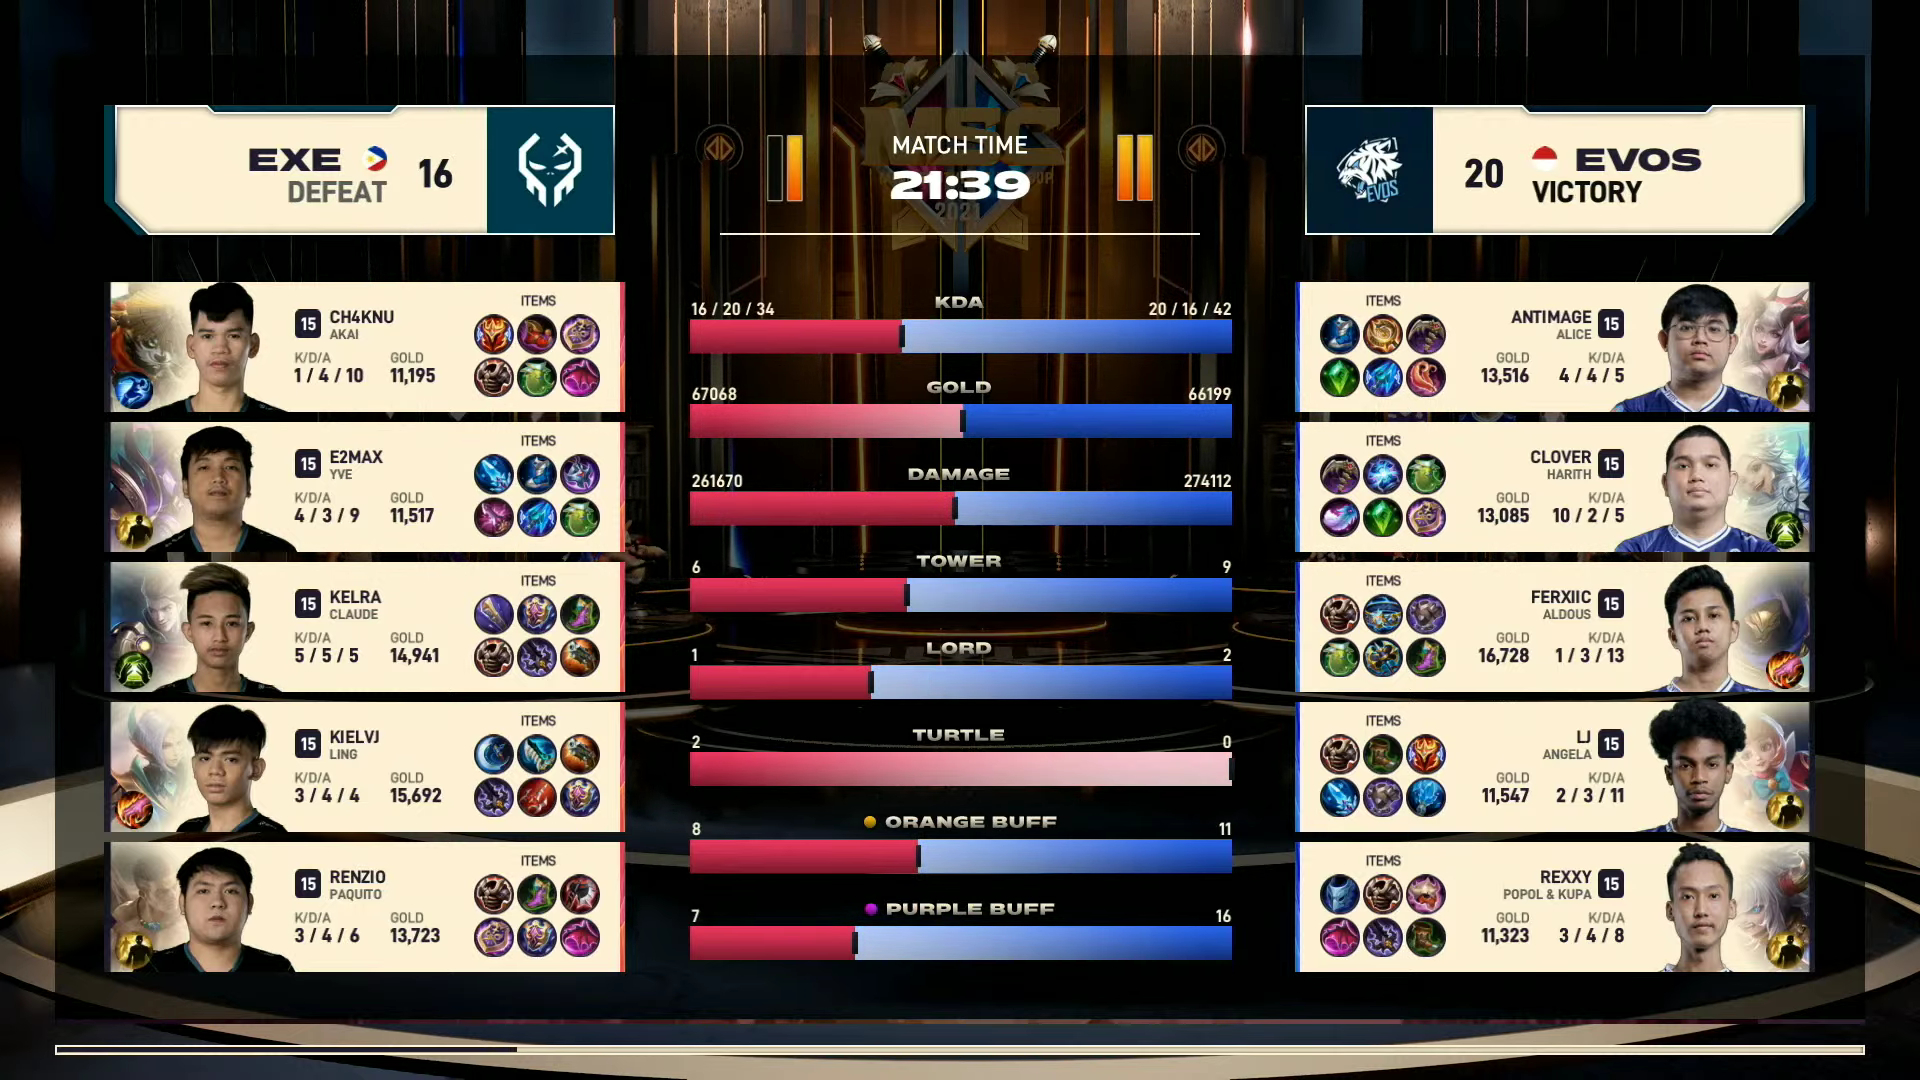 Kelra's gallant stand not enough as Execration drops to MSC lower bracket